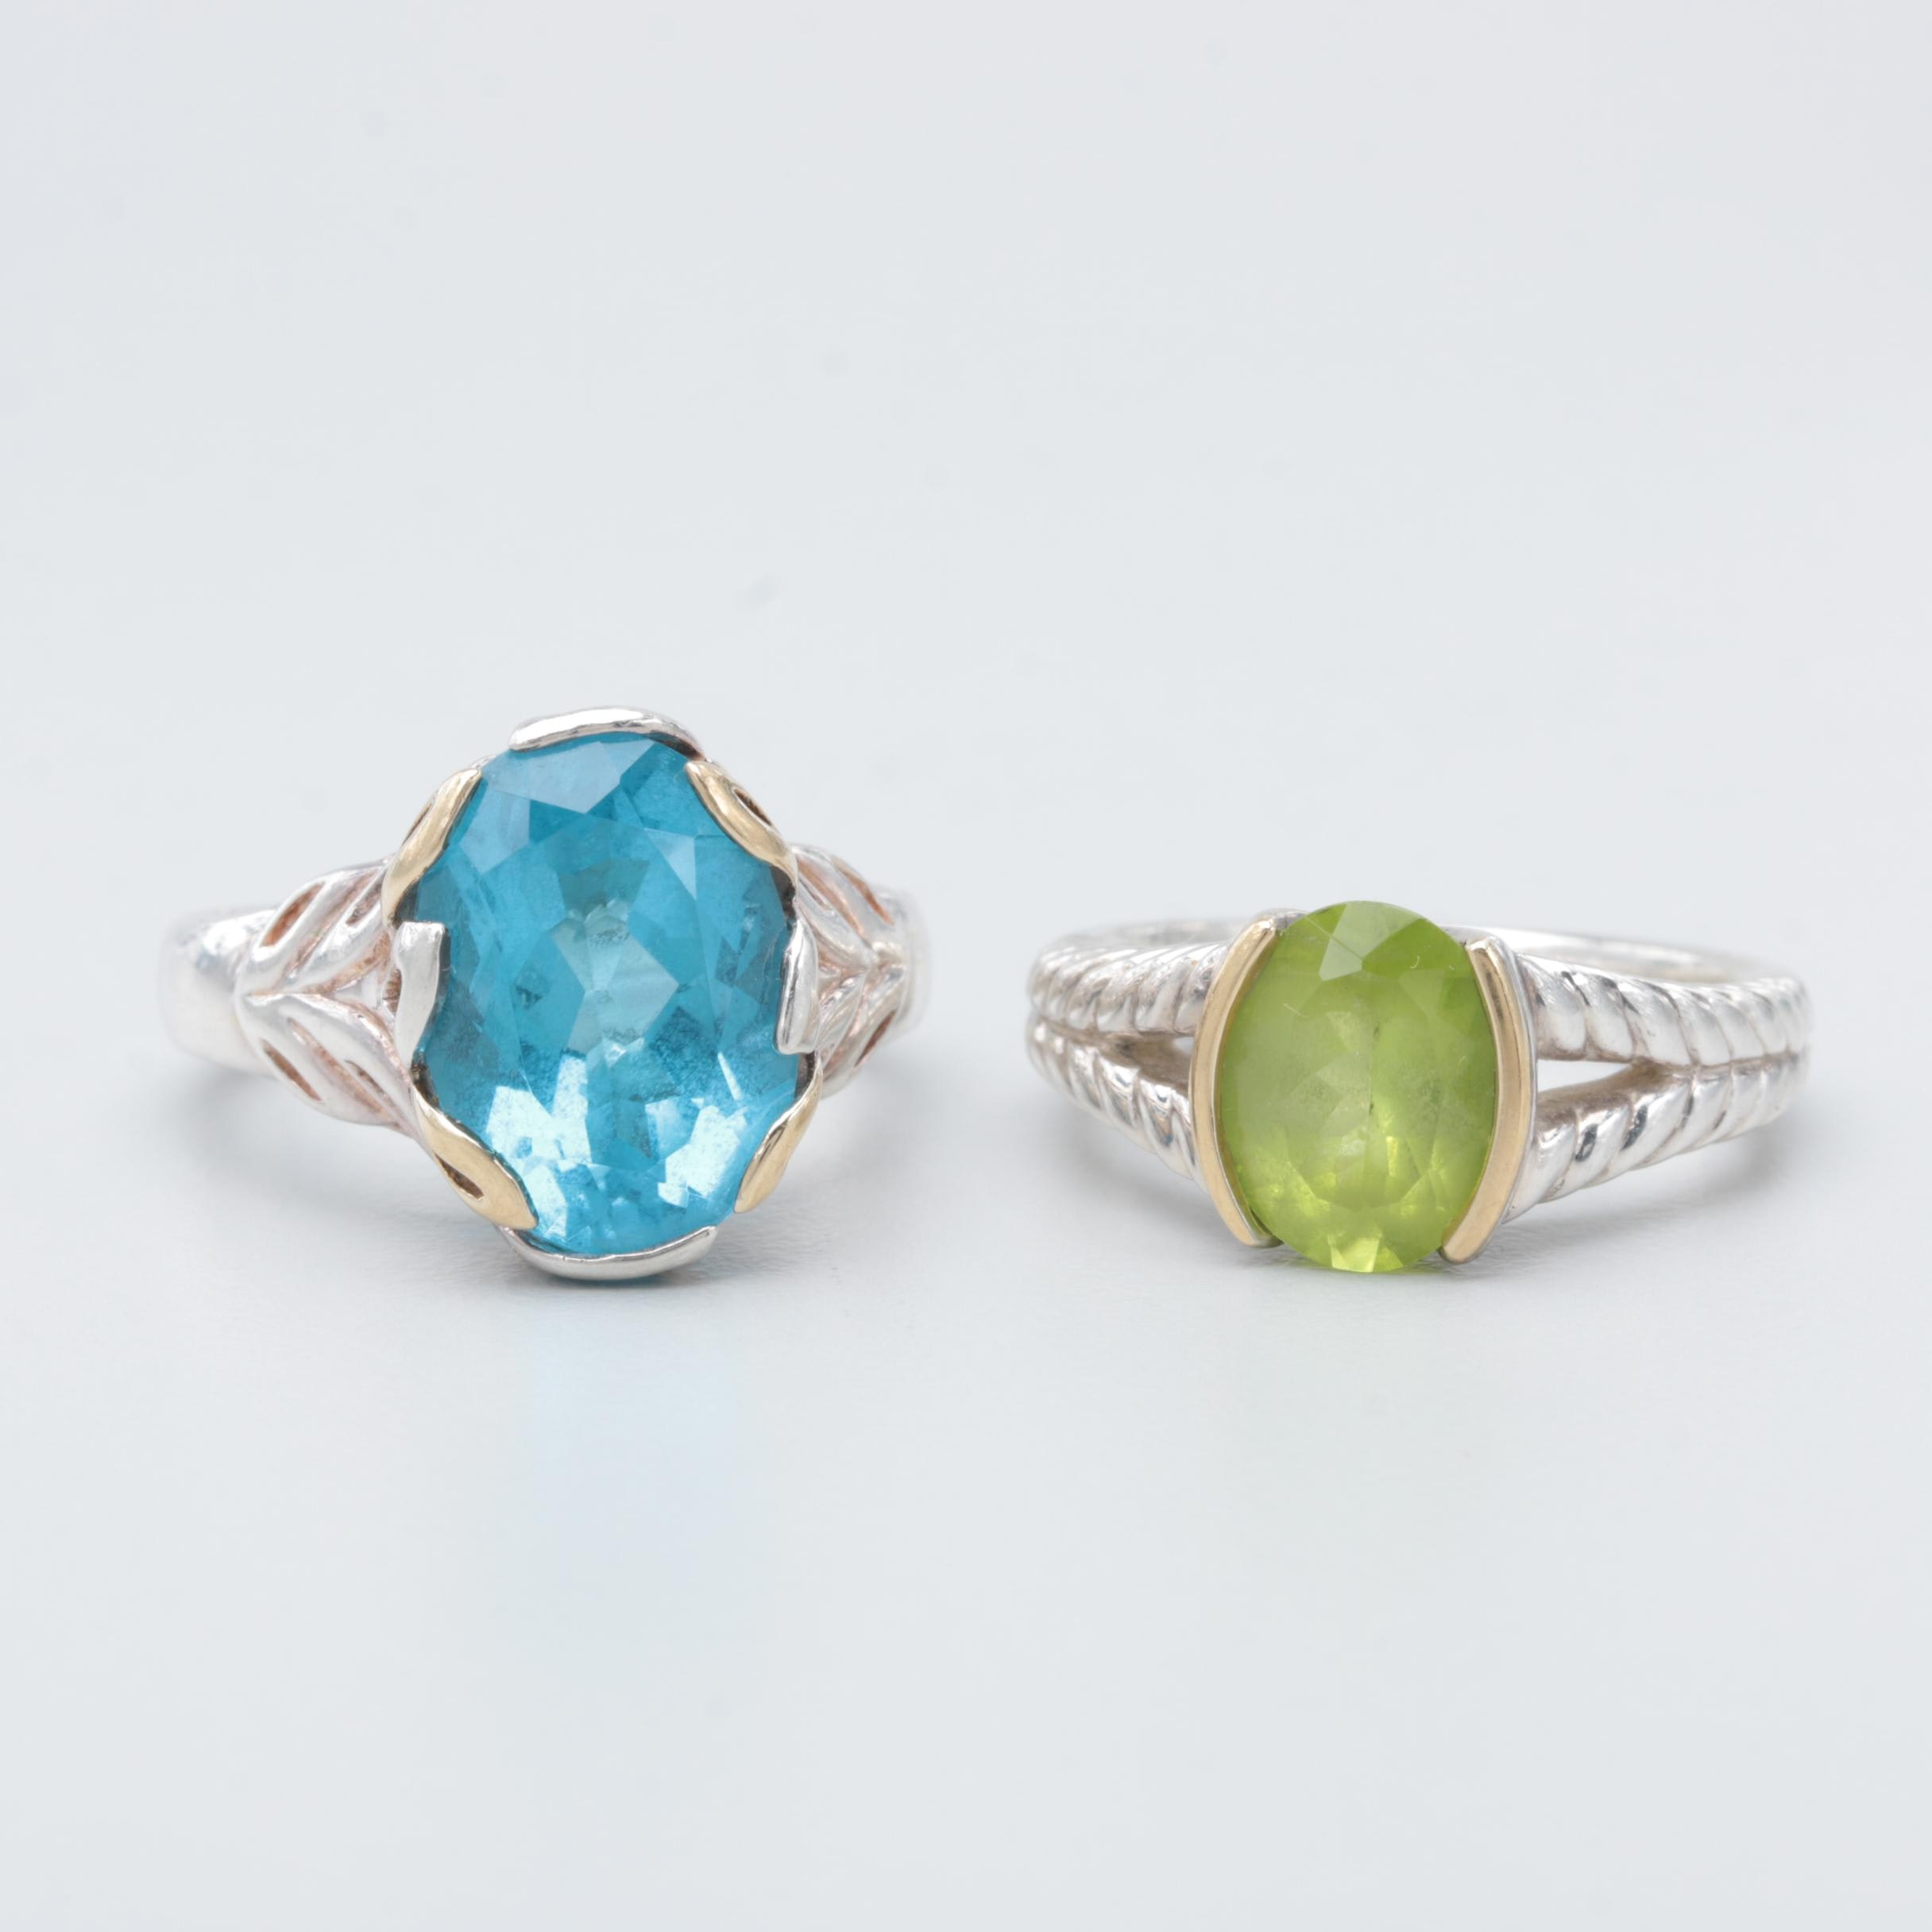 Lorenzo Sterling and 970 Silver Topaz and Peridot Rings with 18K Gold Accents